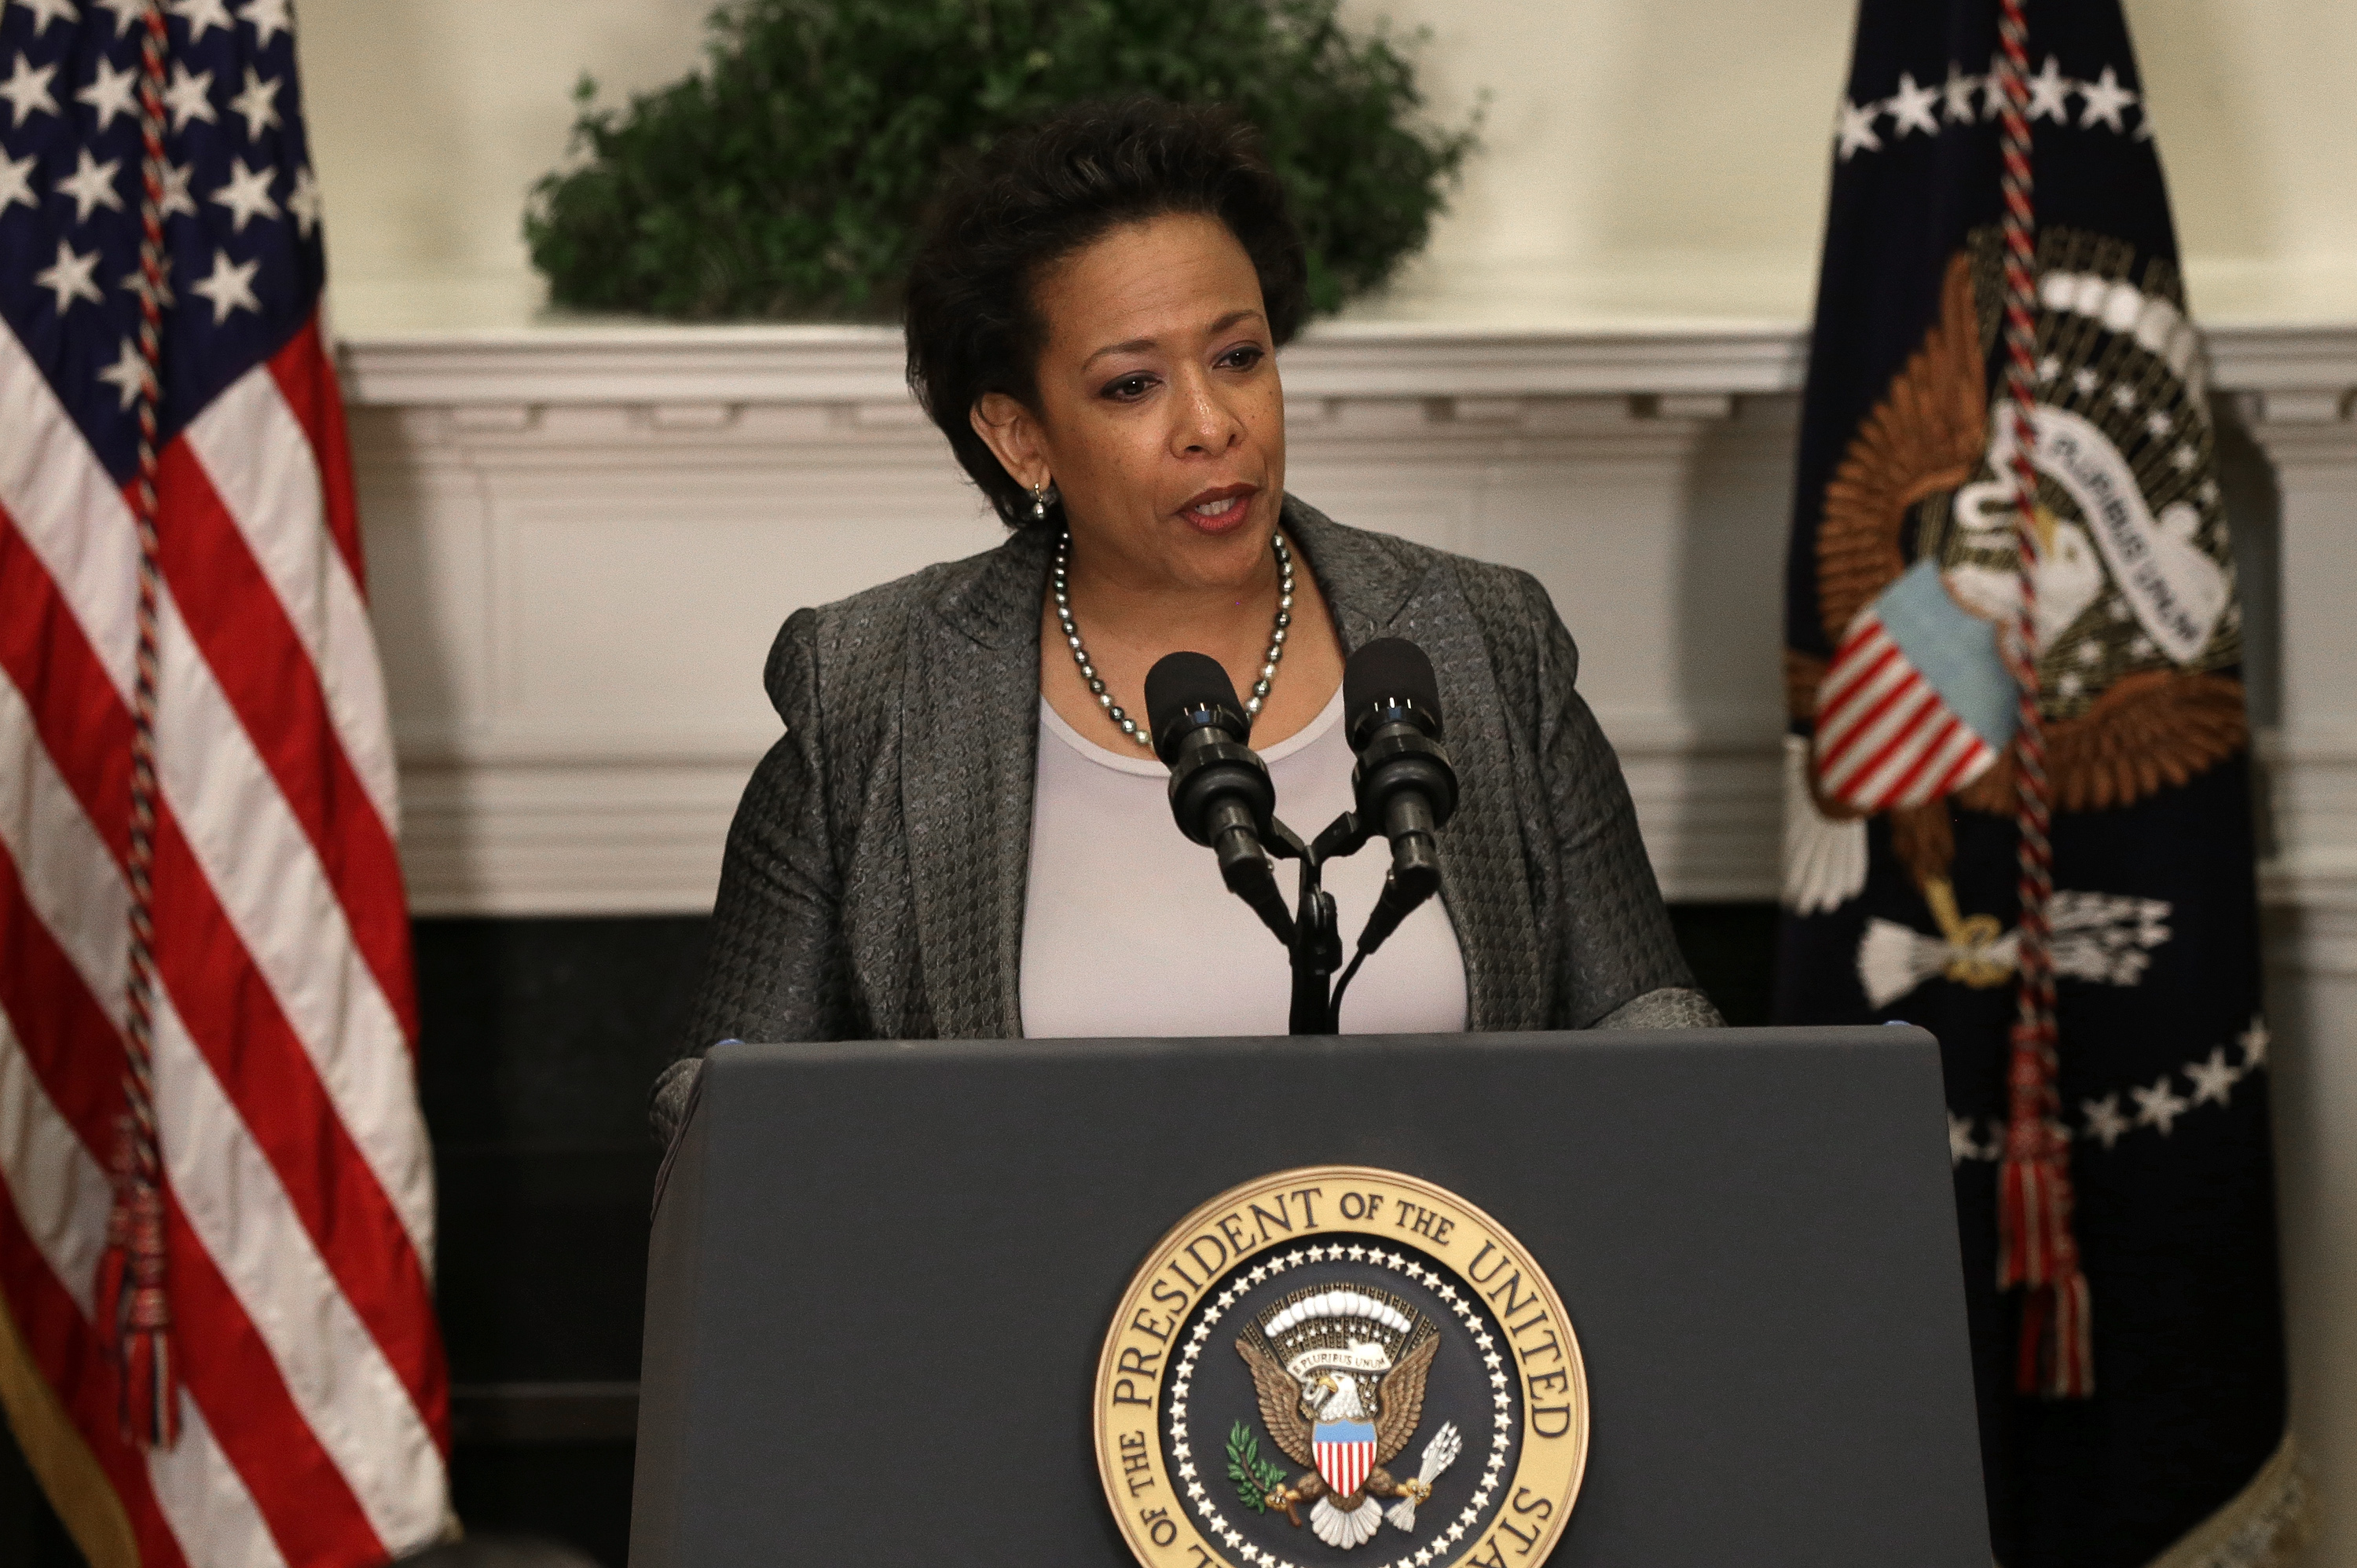 Attorney general pick Loretta Lynch seen as civil rights defender ...